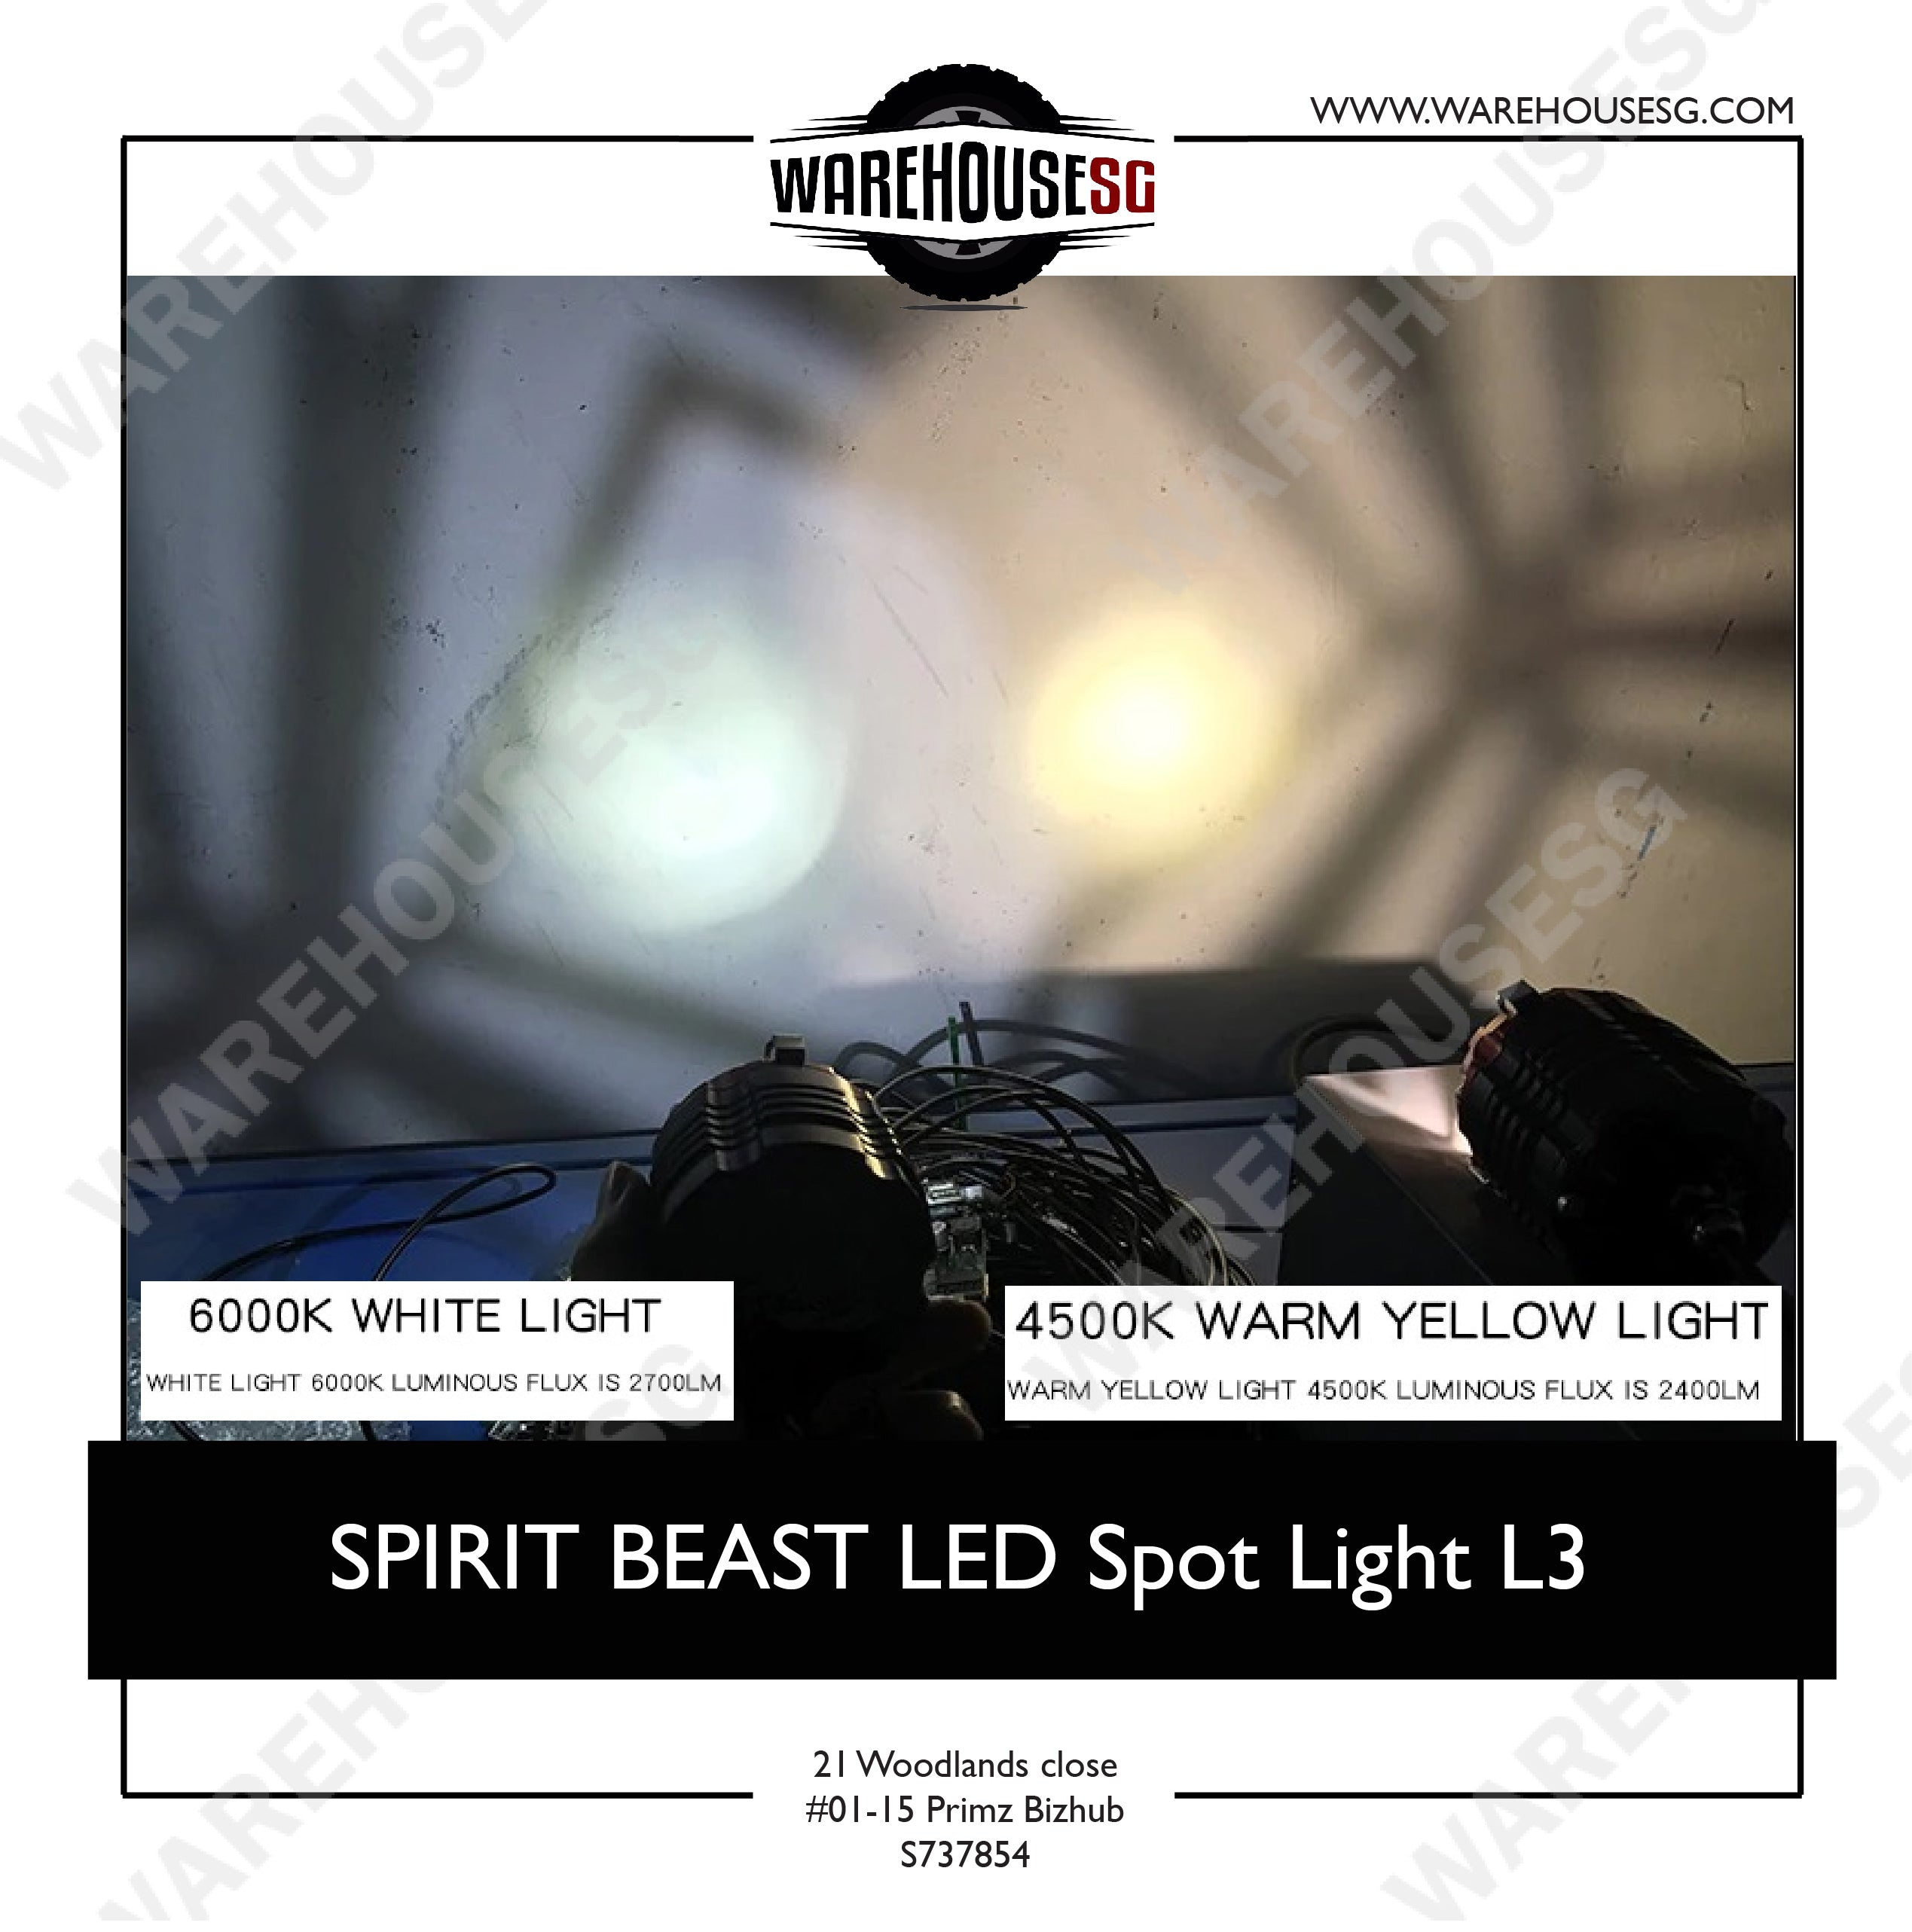 SPIRIT BEAST LED Spot Light L3